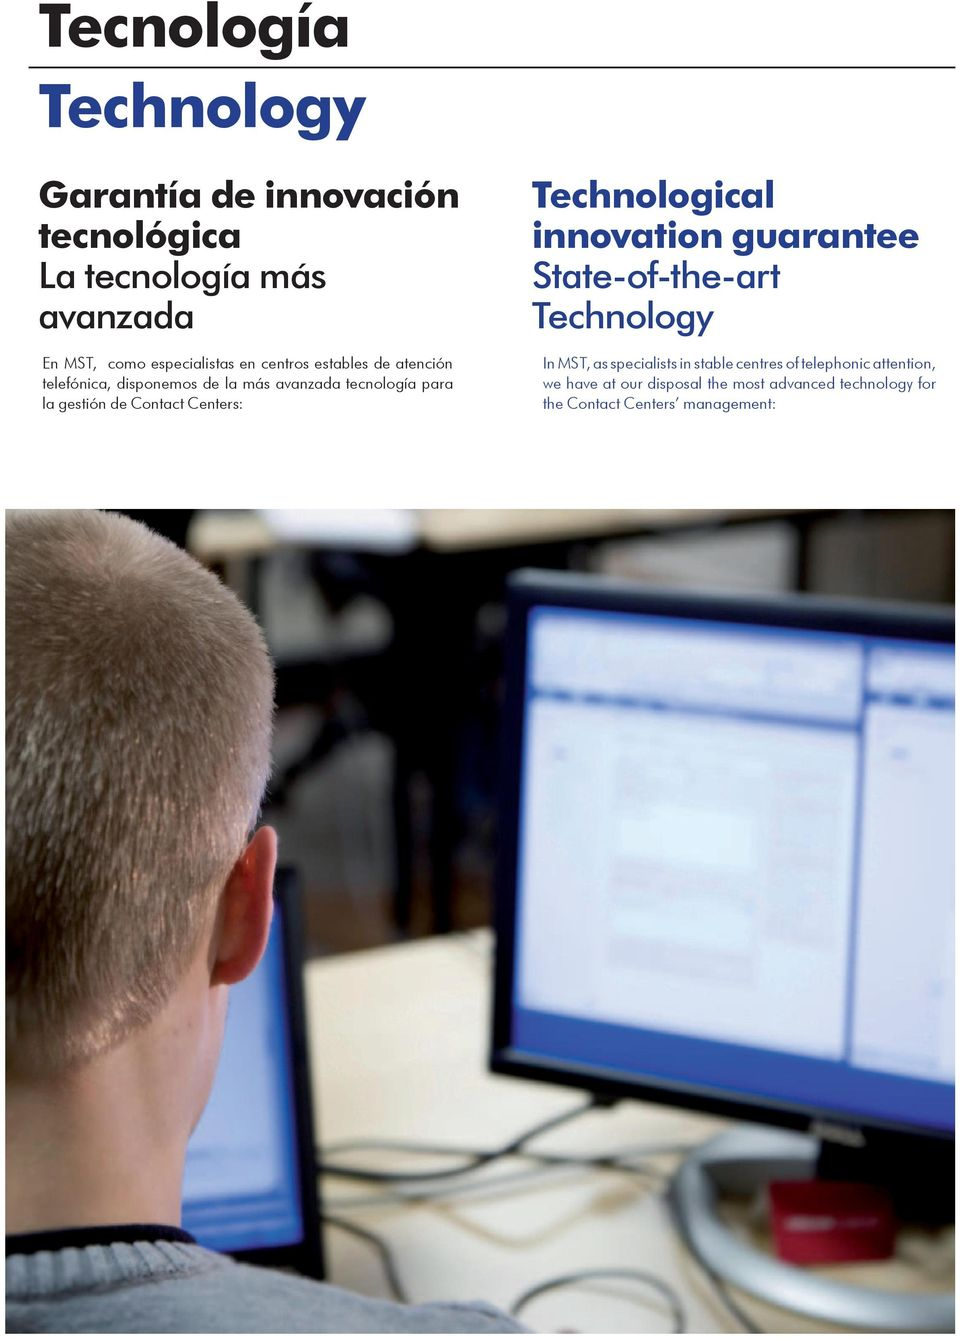 Centers: Technological innovation guarantee State-of-the-art Technology In MST, as specialists in stable centres